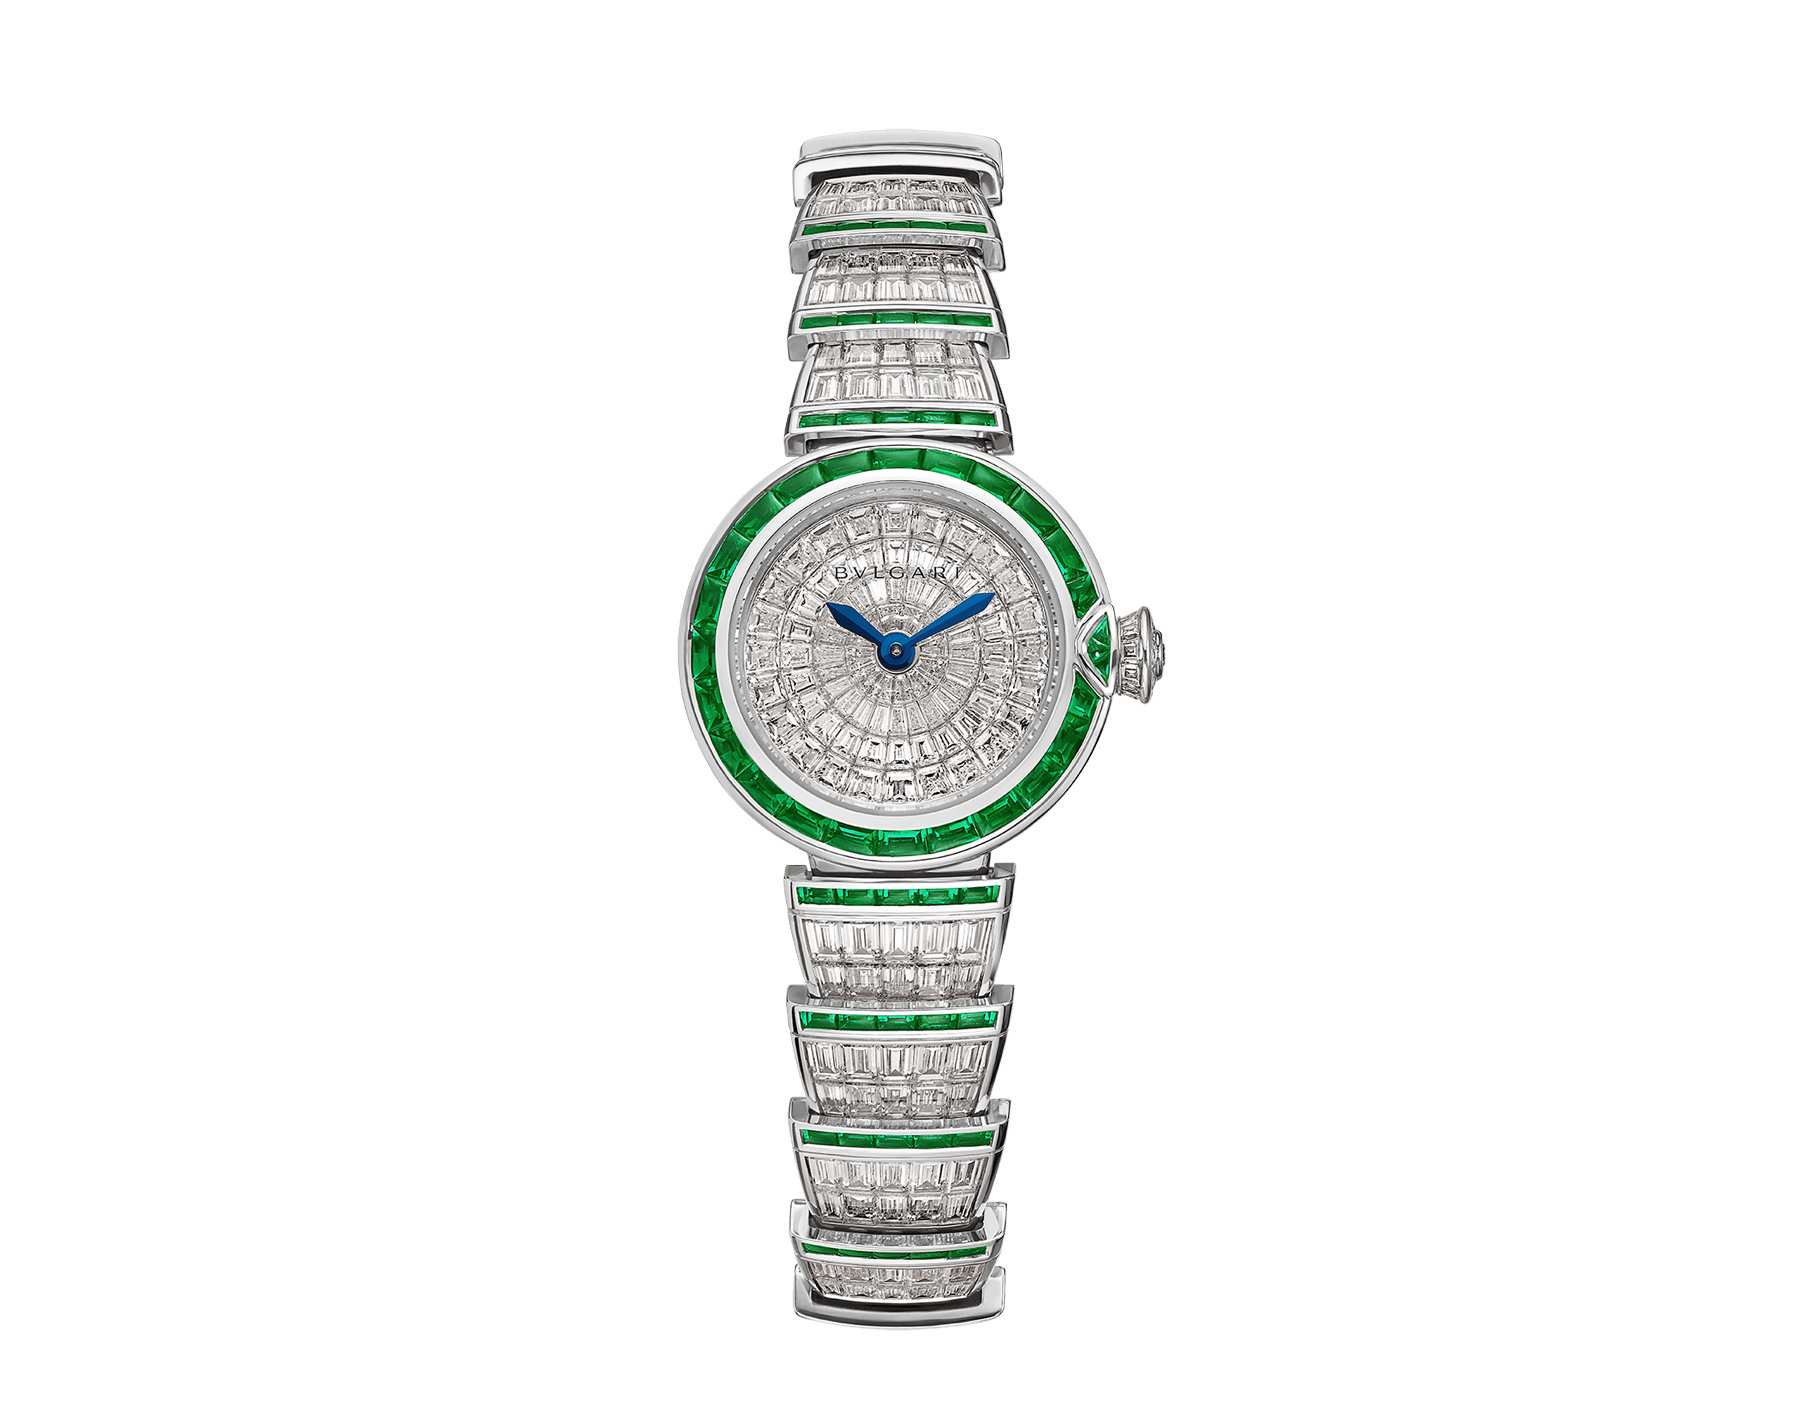 LVCEA watch in 18kt white gold case and bracelet, both set with baguette diamonds and emeralds and full diamond dial. 102466 image 1